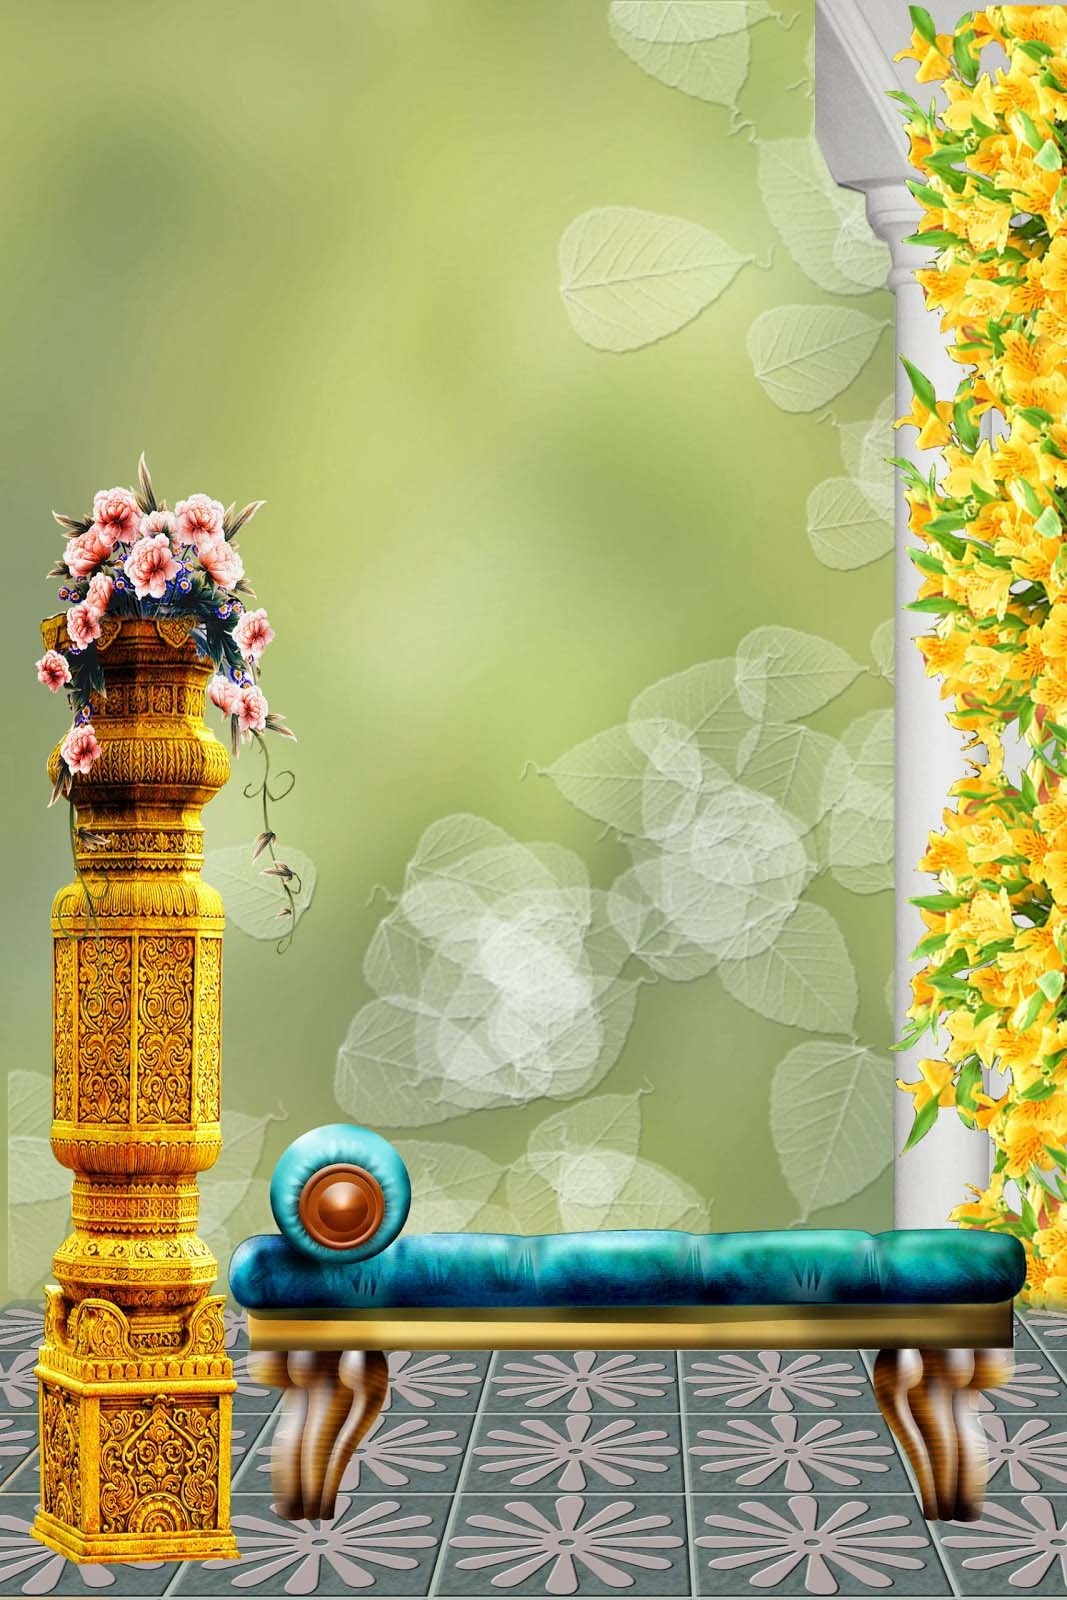 Studio Background HD Images For Photoshop Download ...